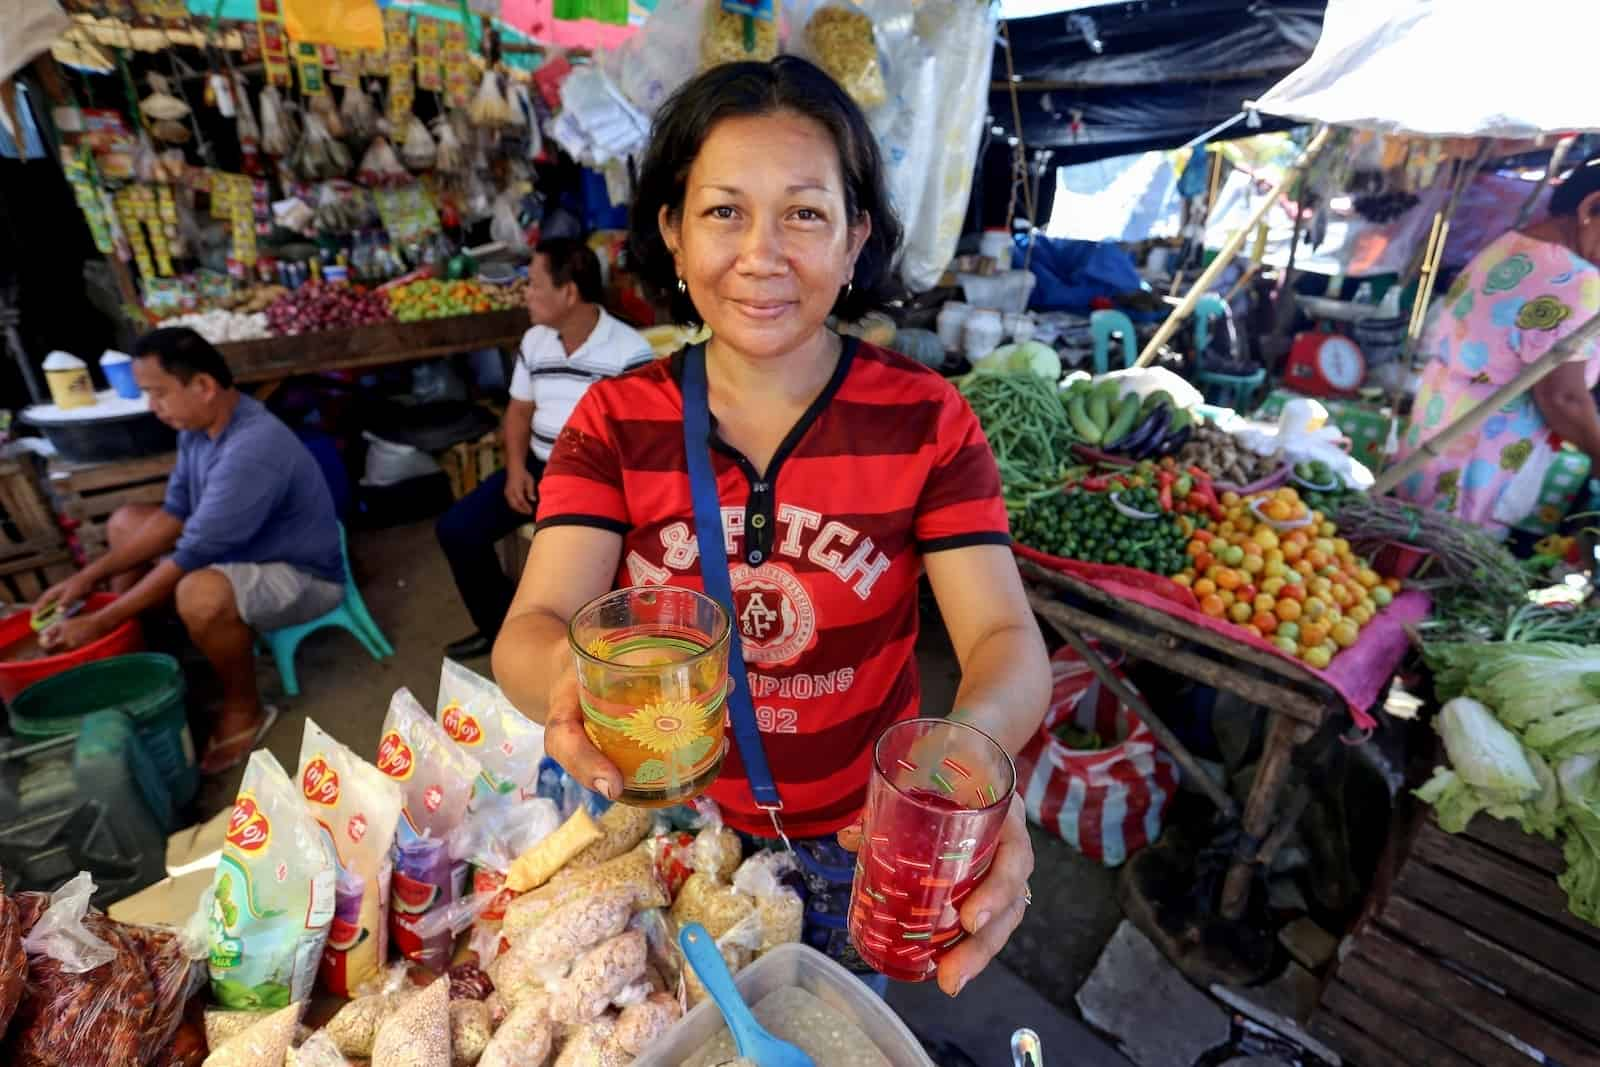 A woman wearing a red shirt holds out two drinks, standing in a grocery stall.